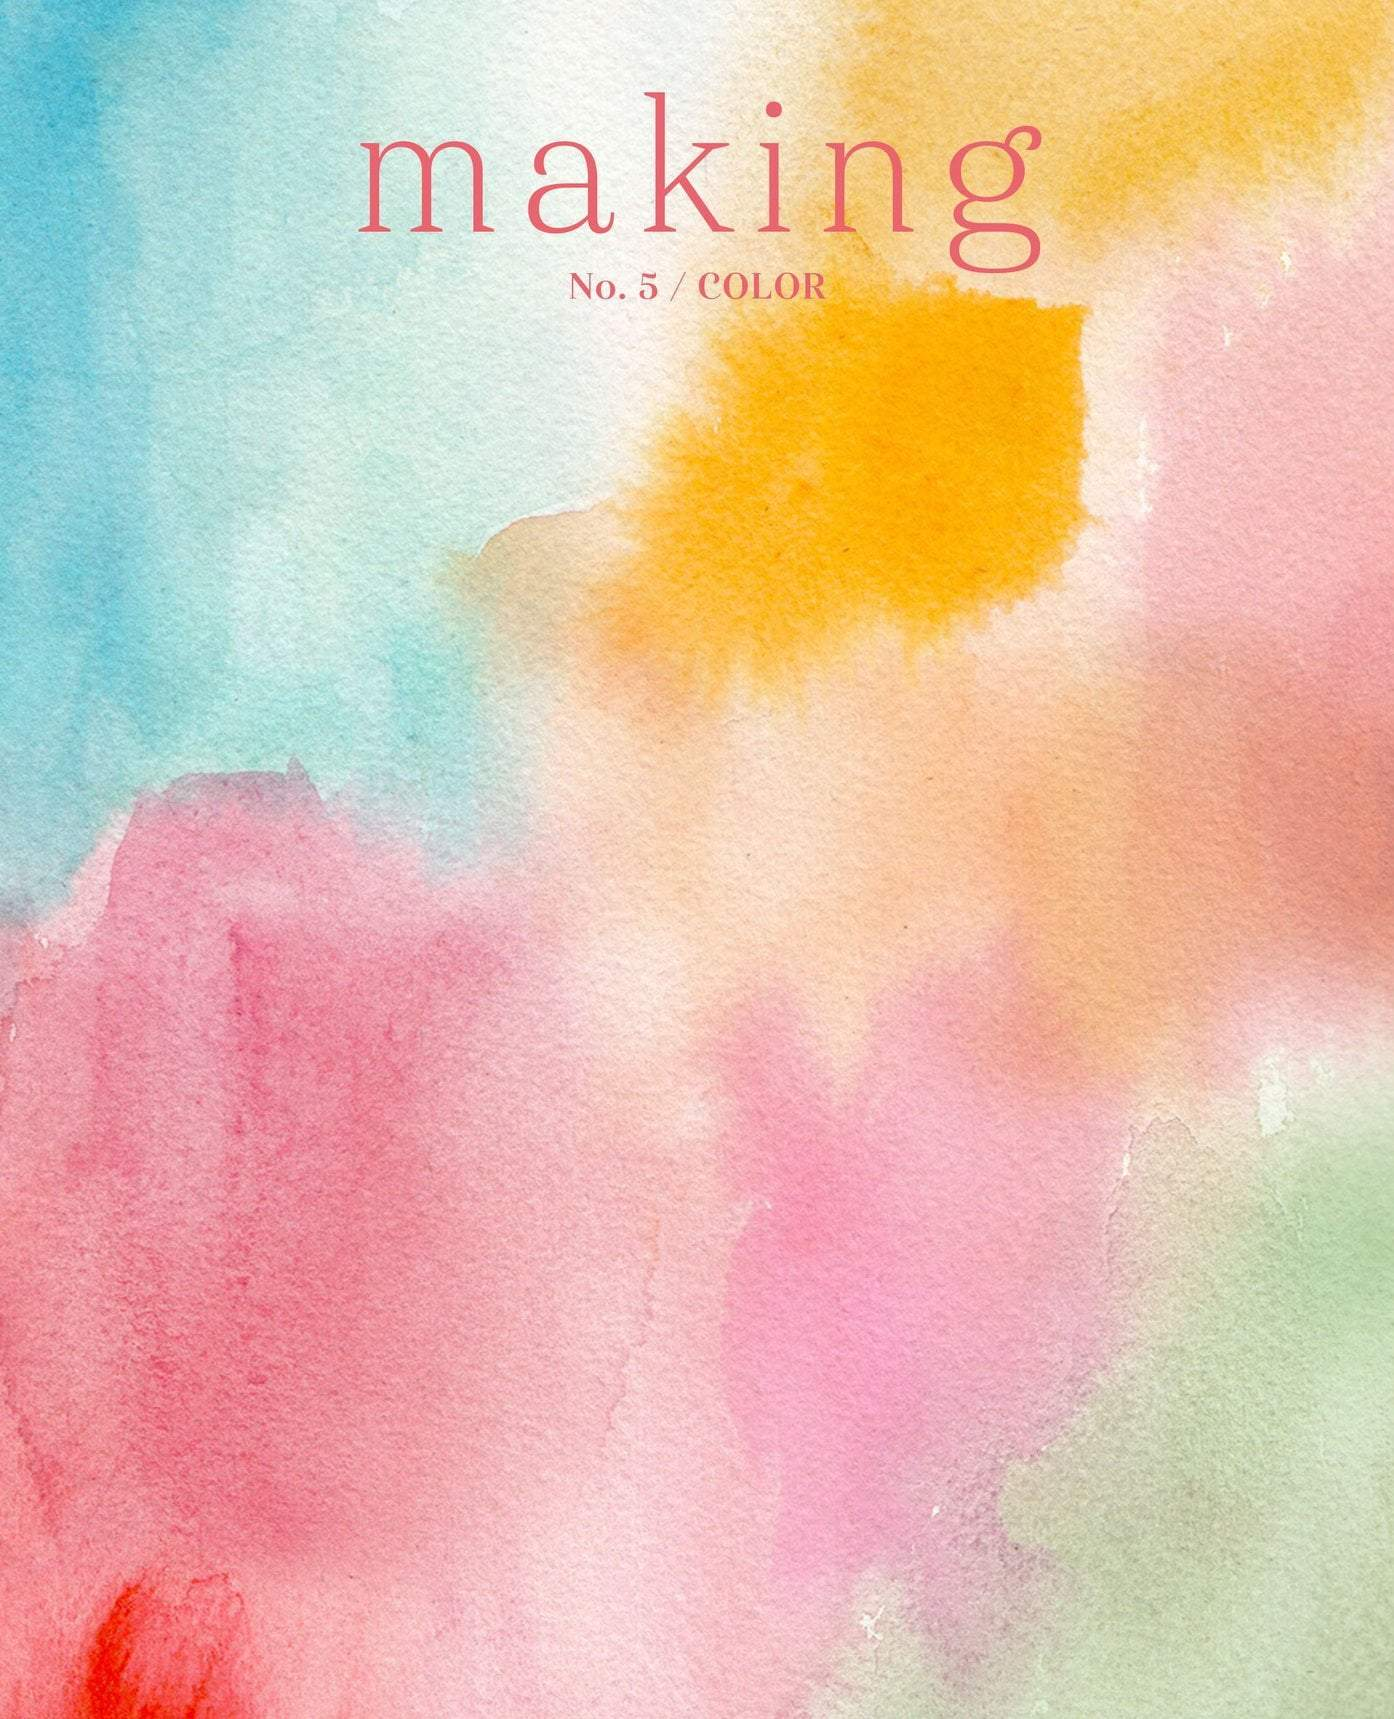 Making Magazine - No. 5 Color (Colour) Making Magazine Magazine